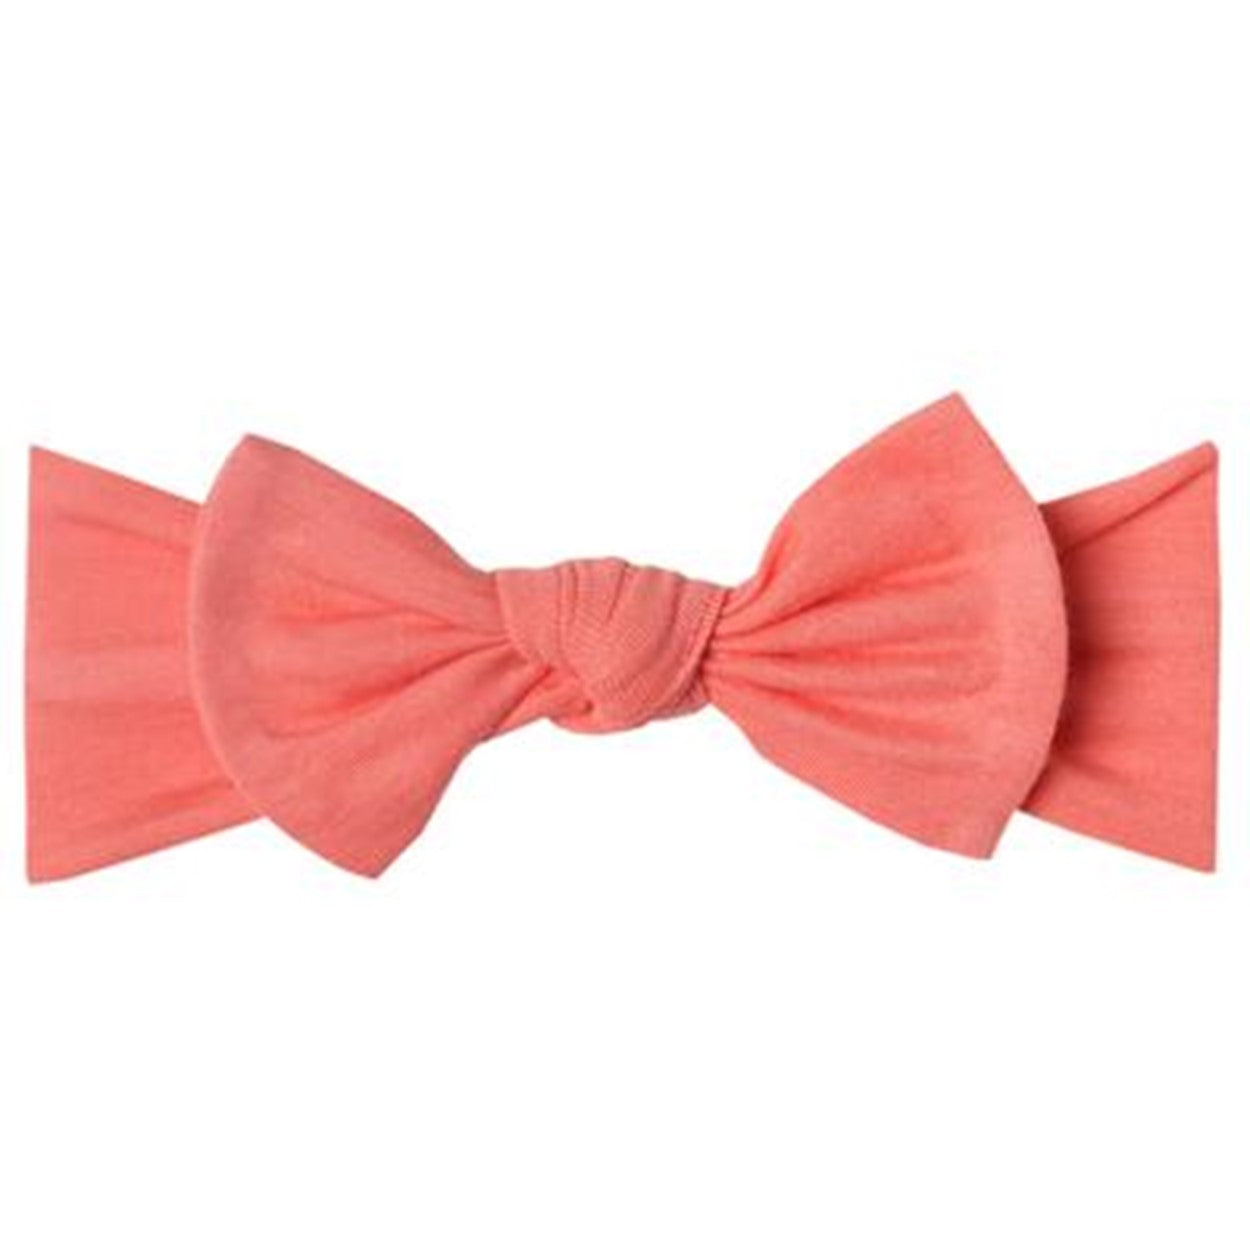 Copper Pearl Knit Headband Bow - Stella